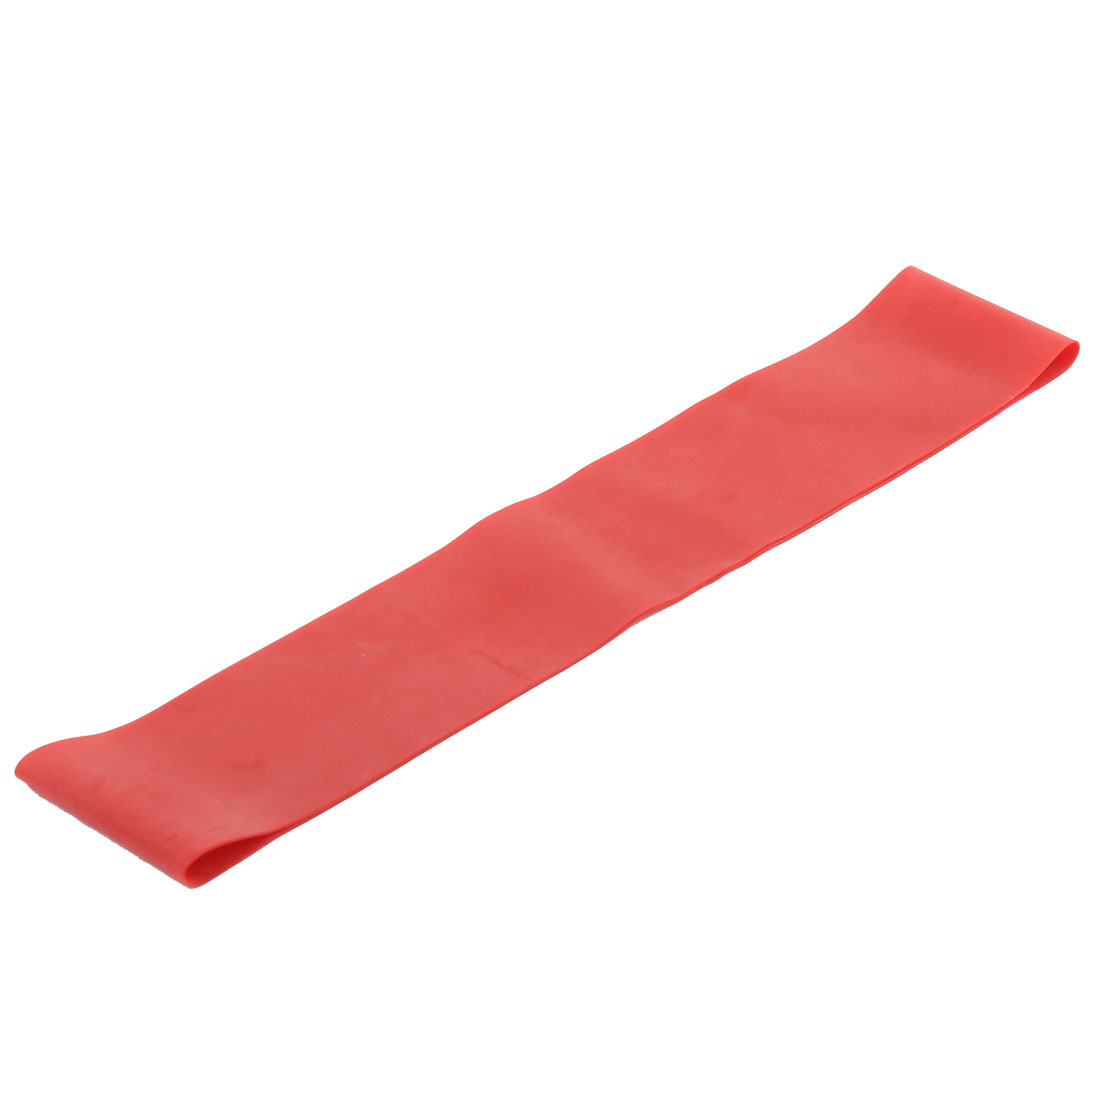 Rubber Yoga Fitness Training Sport Exercise Resistance Bands Red 2 Pcs